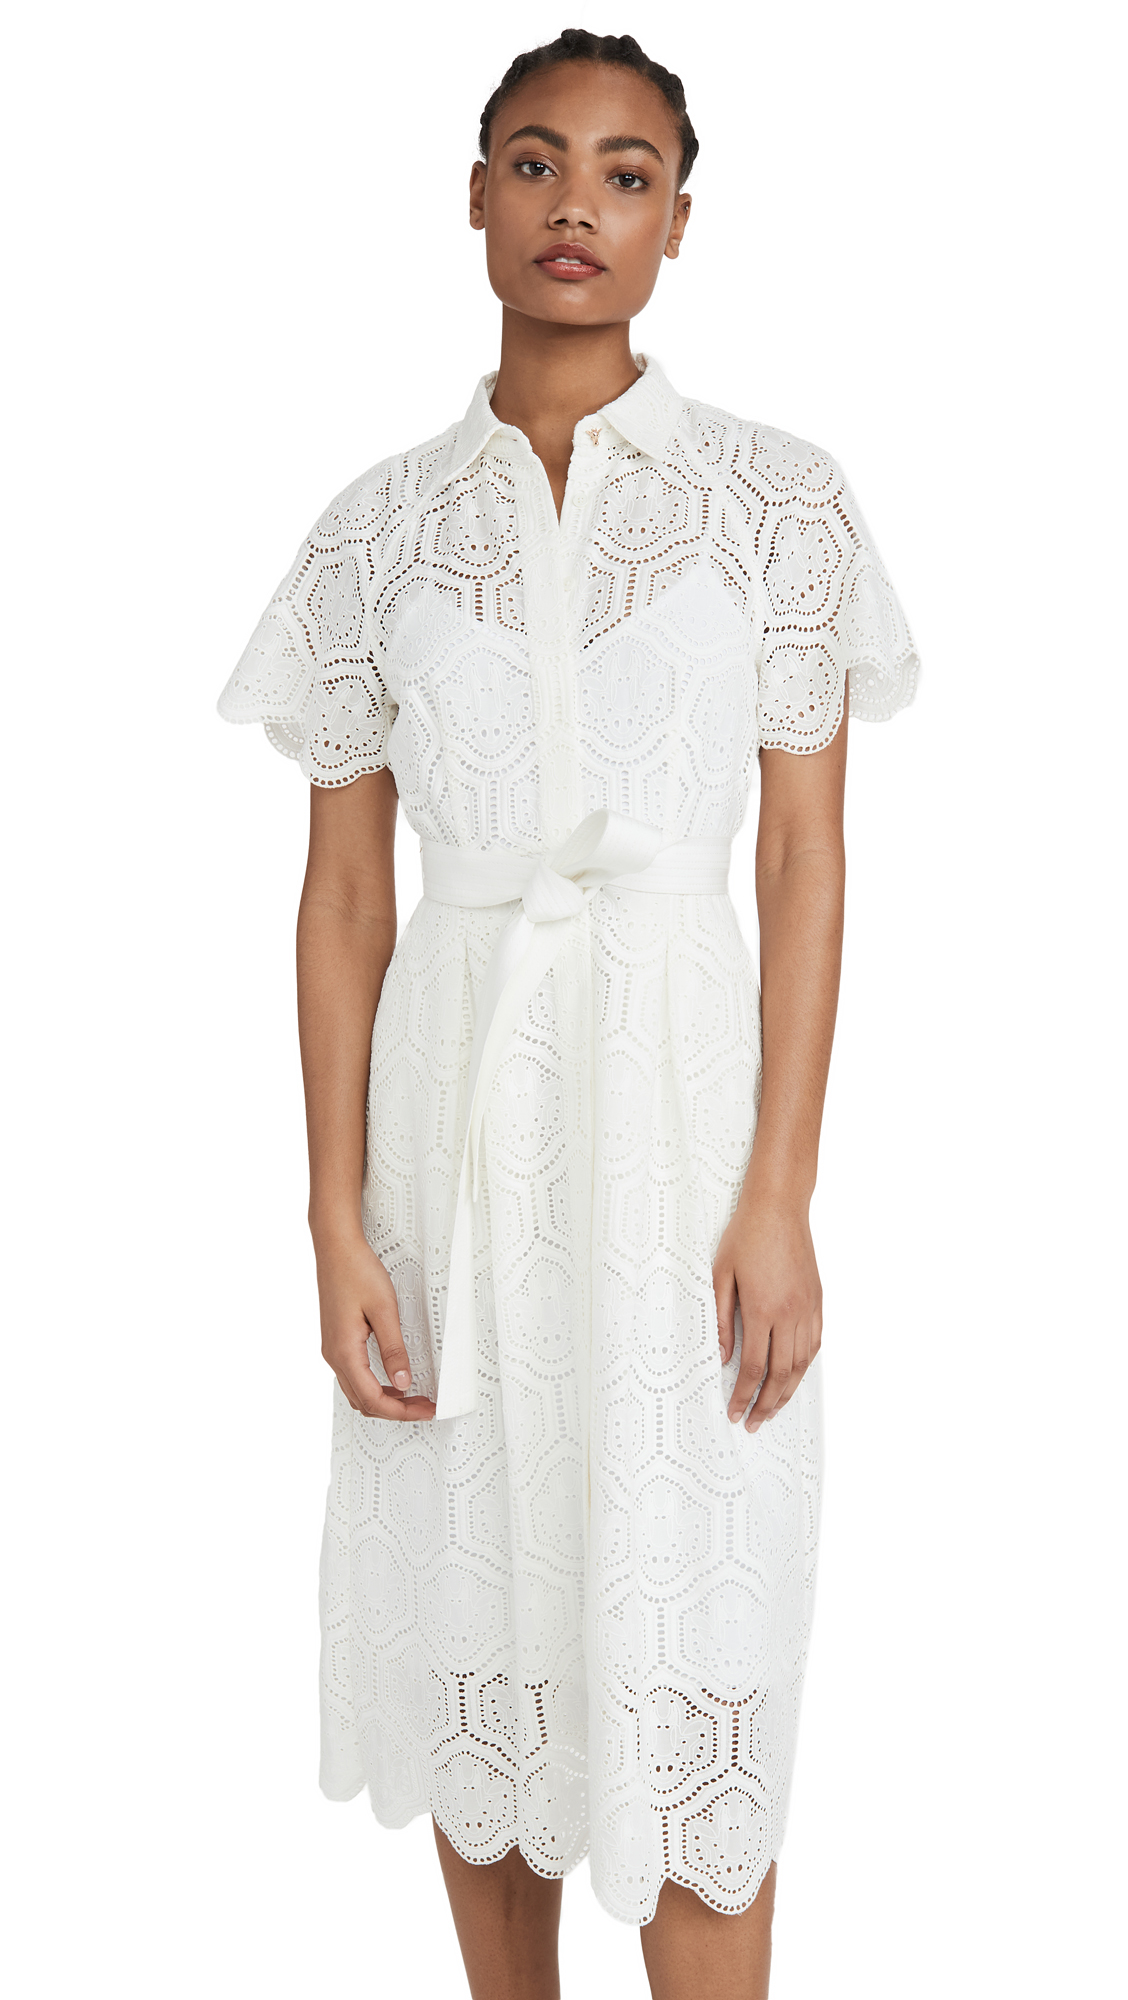 Rebecca Vallance Savannah Midi Dress - 30% Off Sale